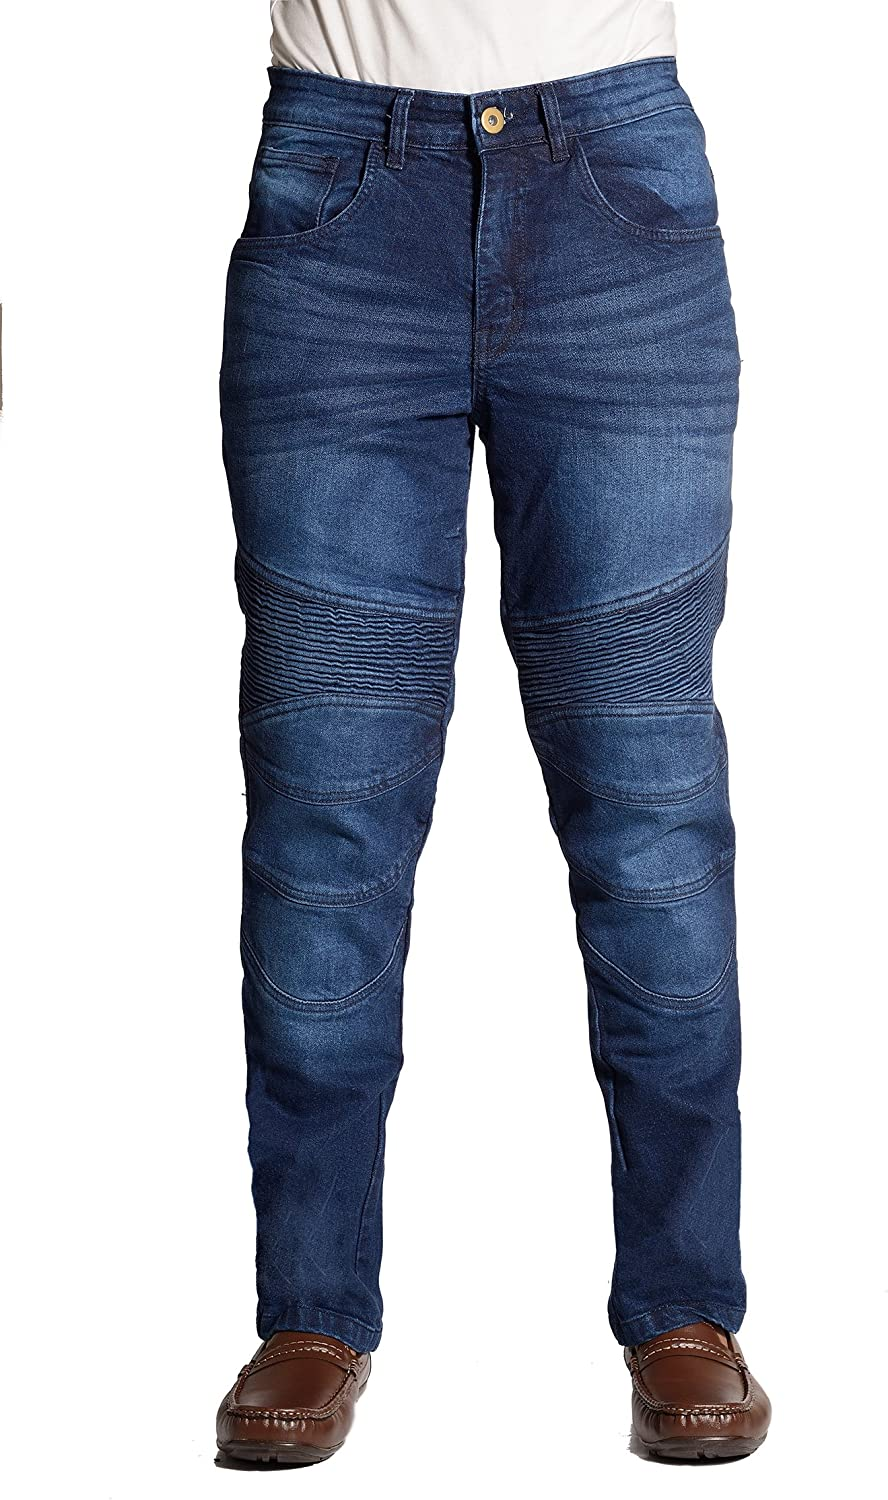 EVOQE Estrada Motorcycle Jeans Mens Motorbike jeans Armoured Trouser Removable Armour CE Blue